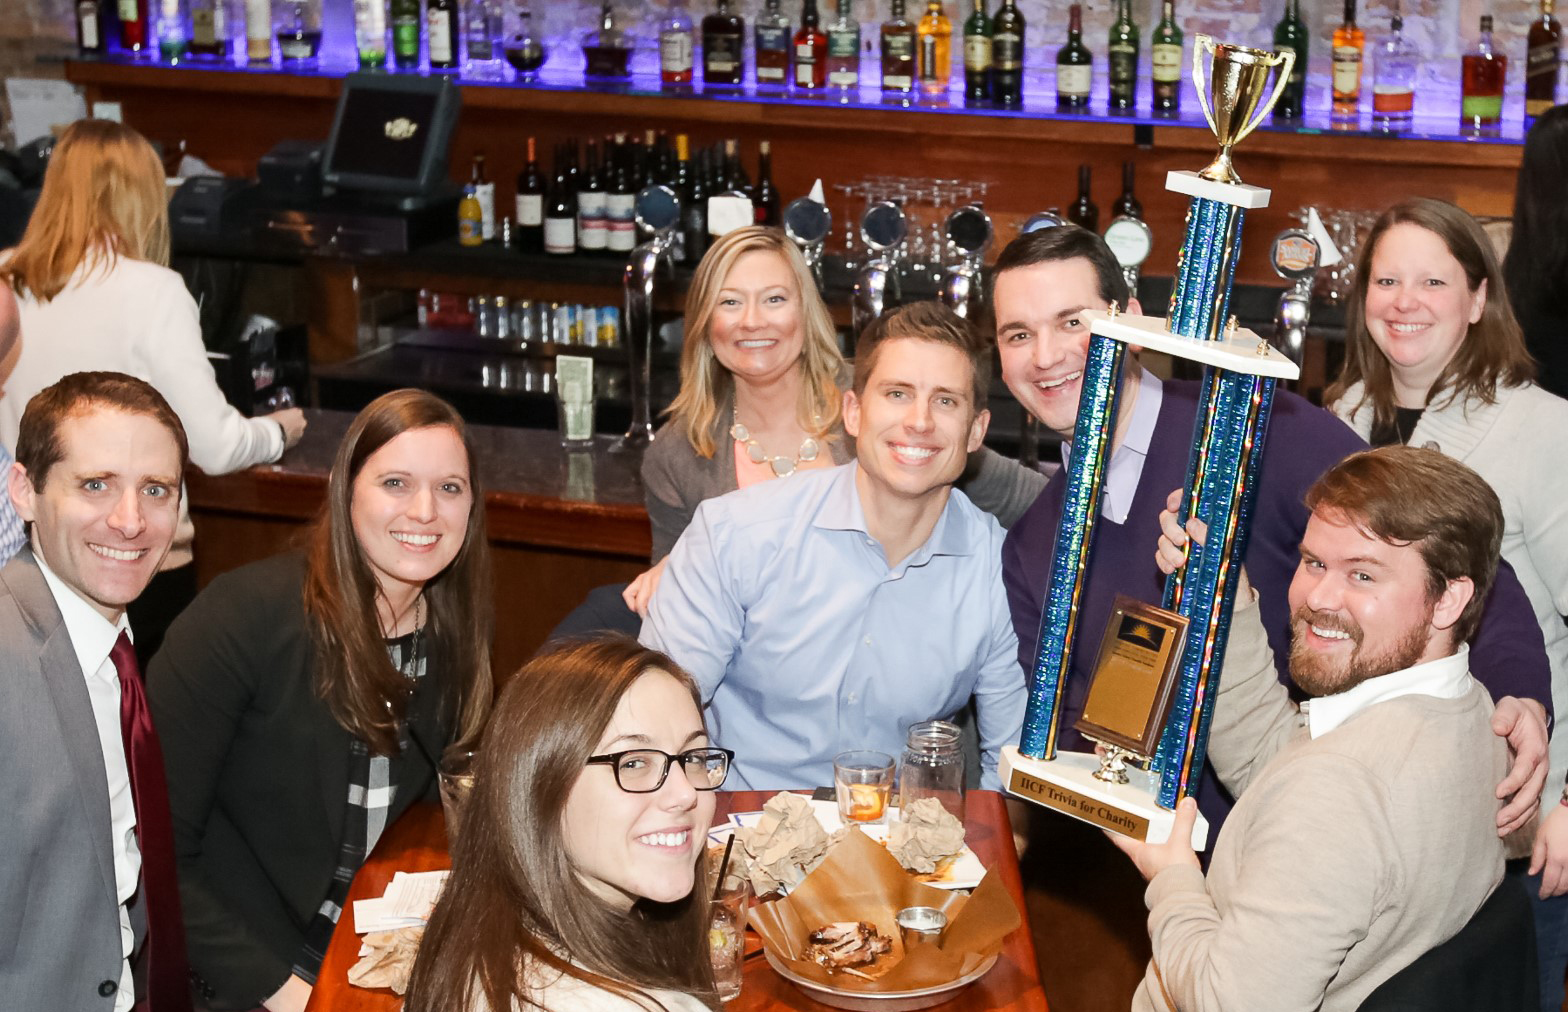 Winners-of-trivia-contest-holding-trophy